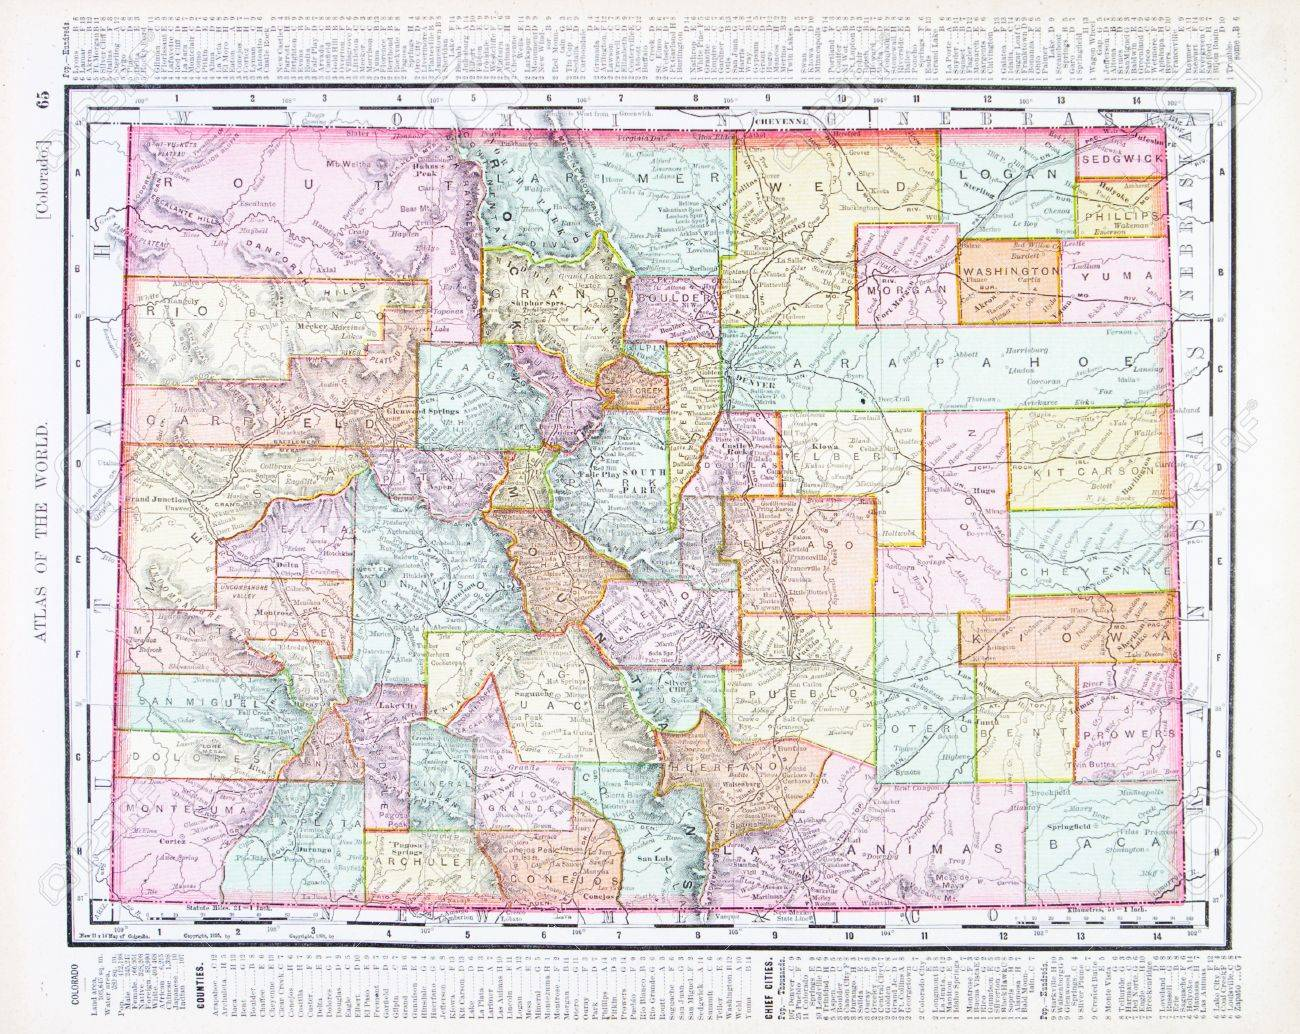 Colorado In Usa Map.Vintage Map Of The State Of Colorado Usa 1900 Stock Photo Picture